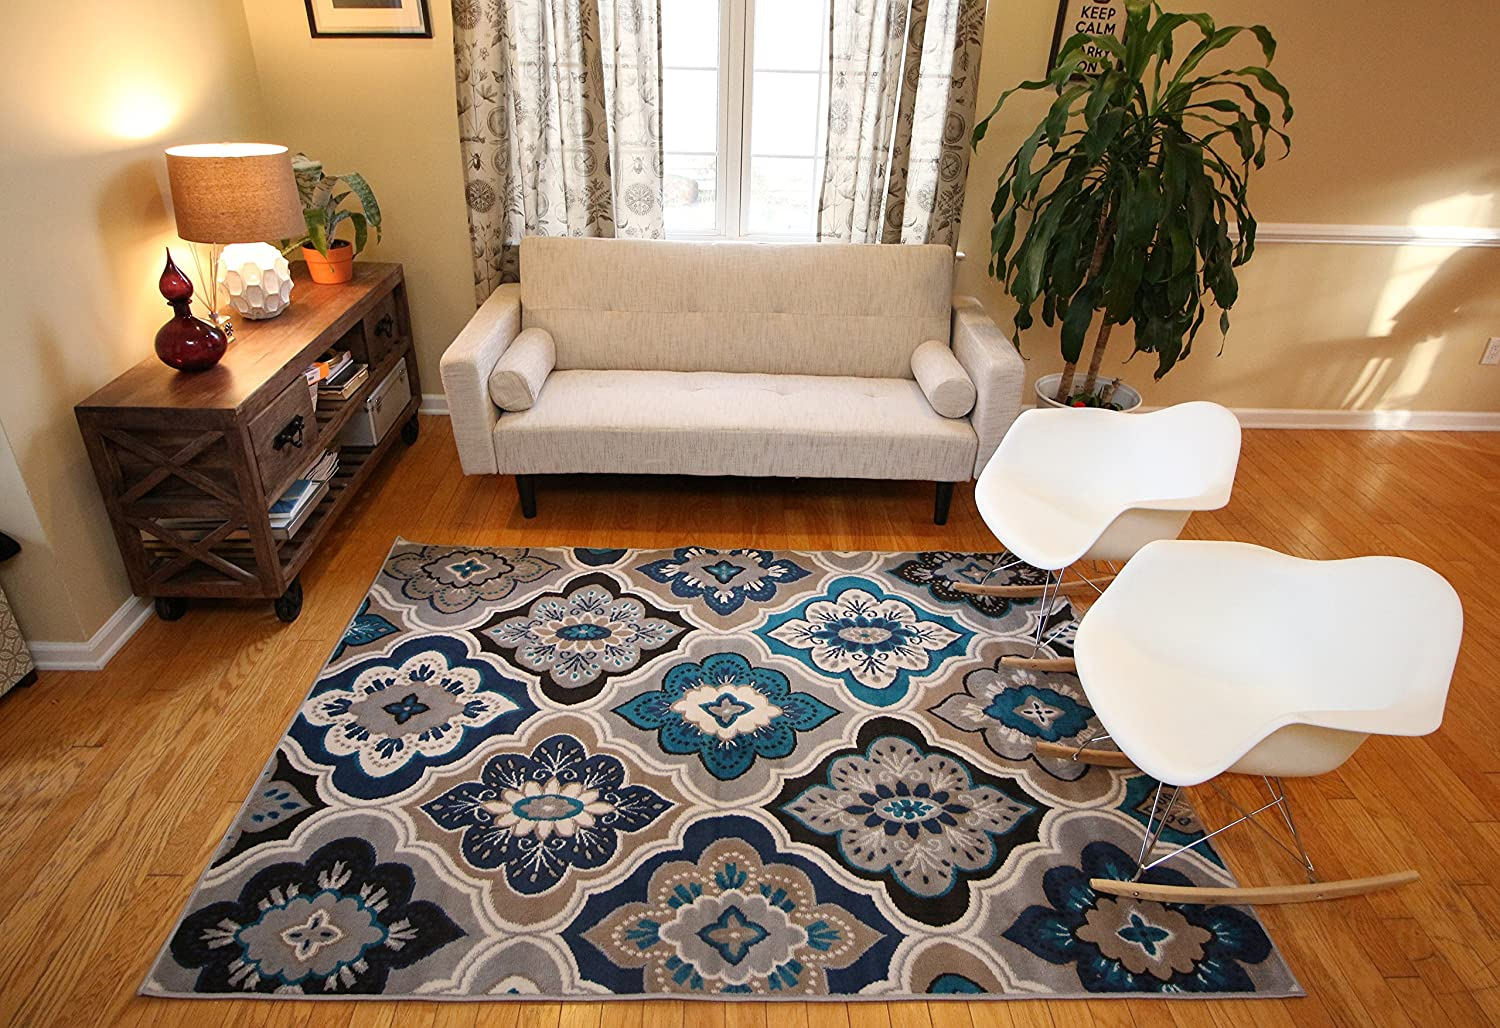 Amazon generations panal and diamonds area rug 52 by 73 amazon generations panal and diamonds area rug 52 by 73 inch beige kitchen dining baanklon Gallery